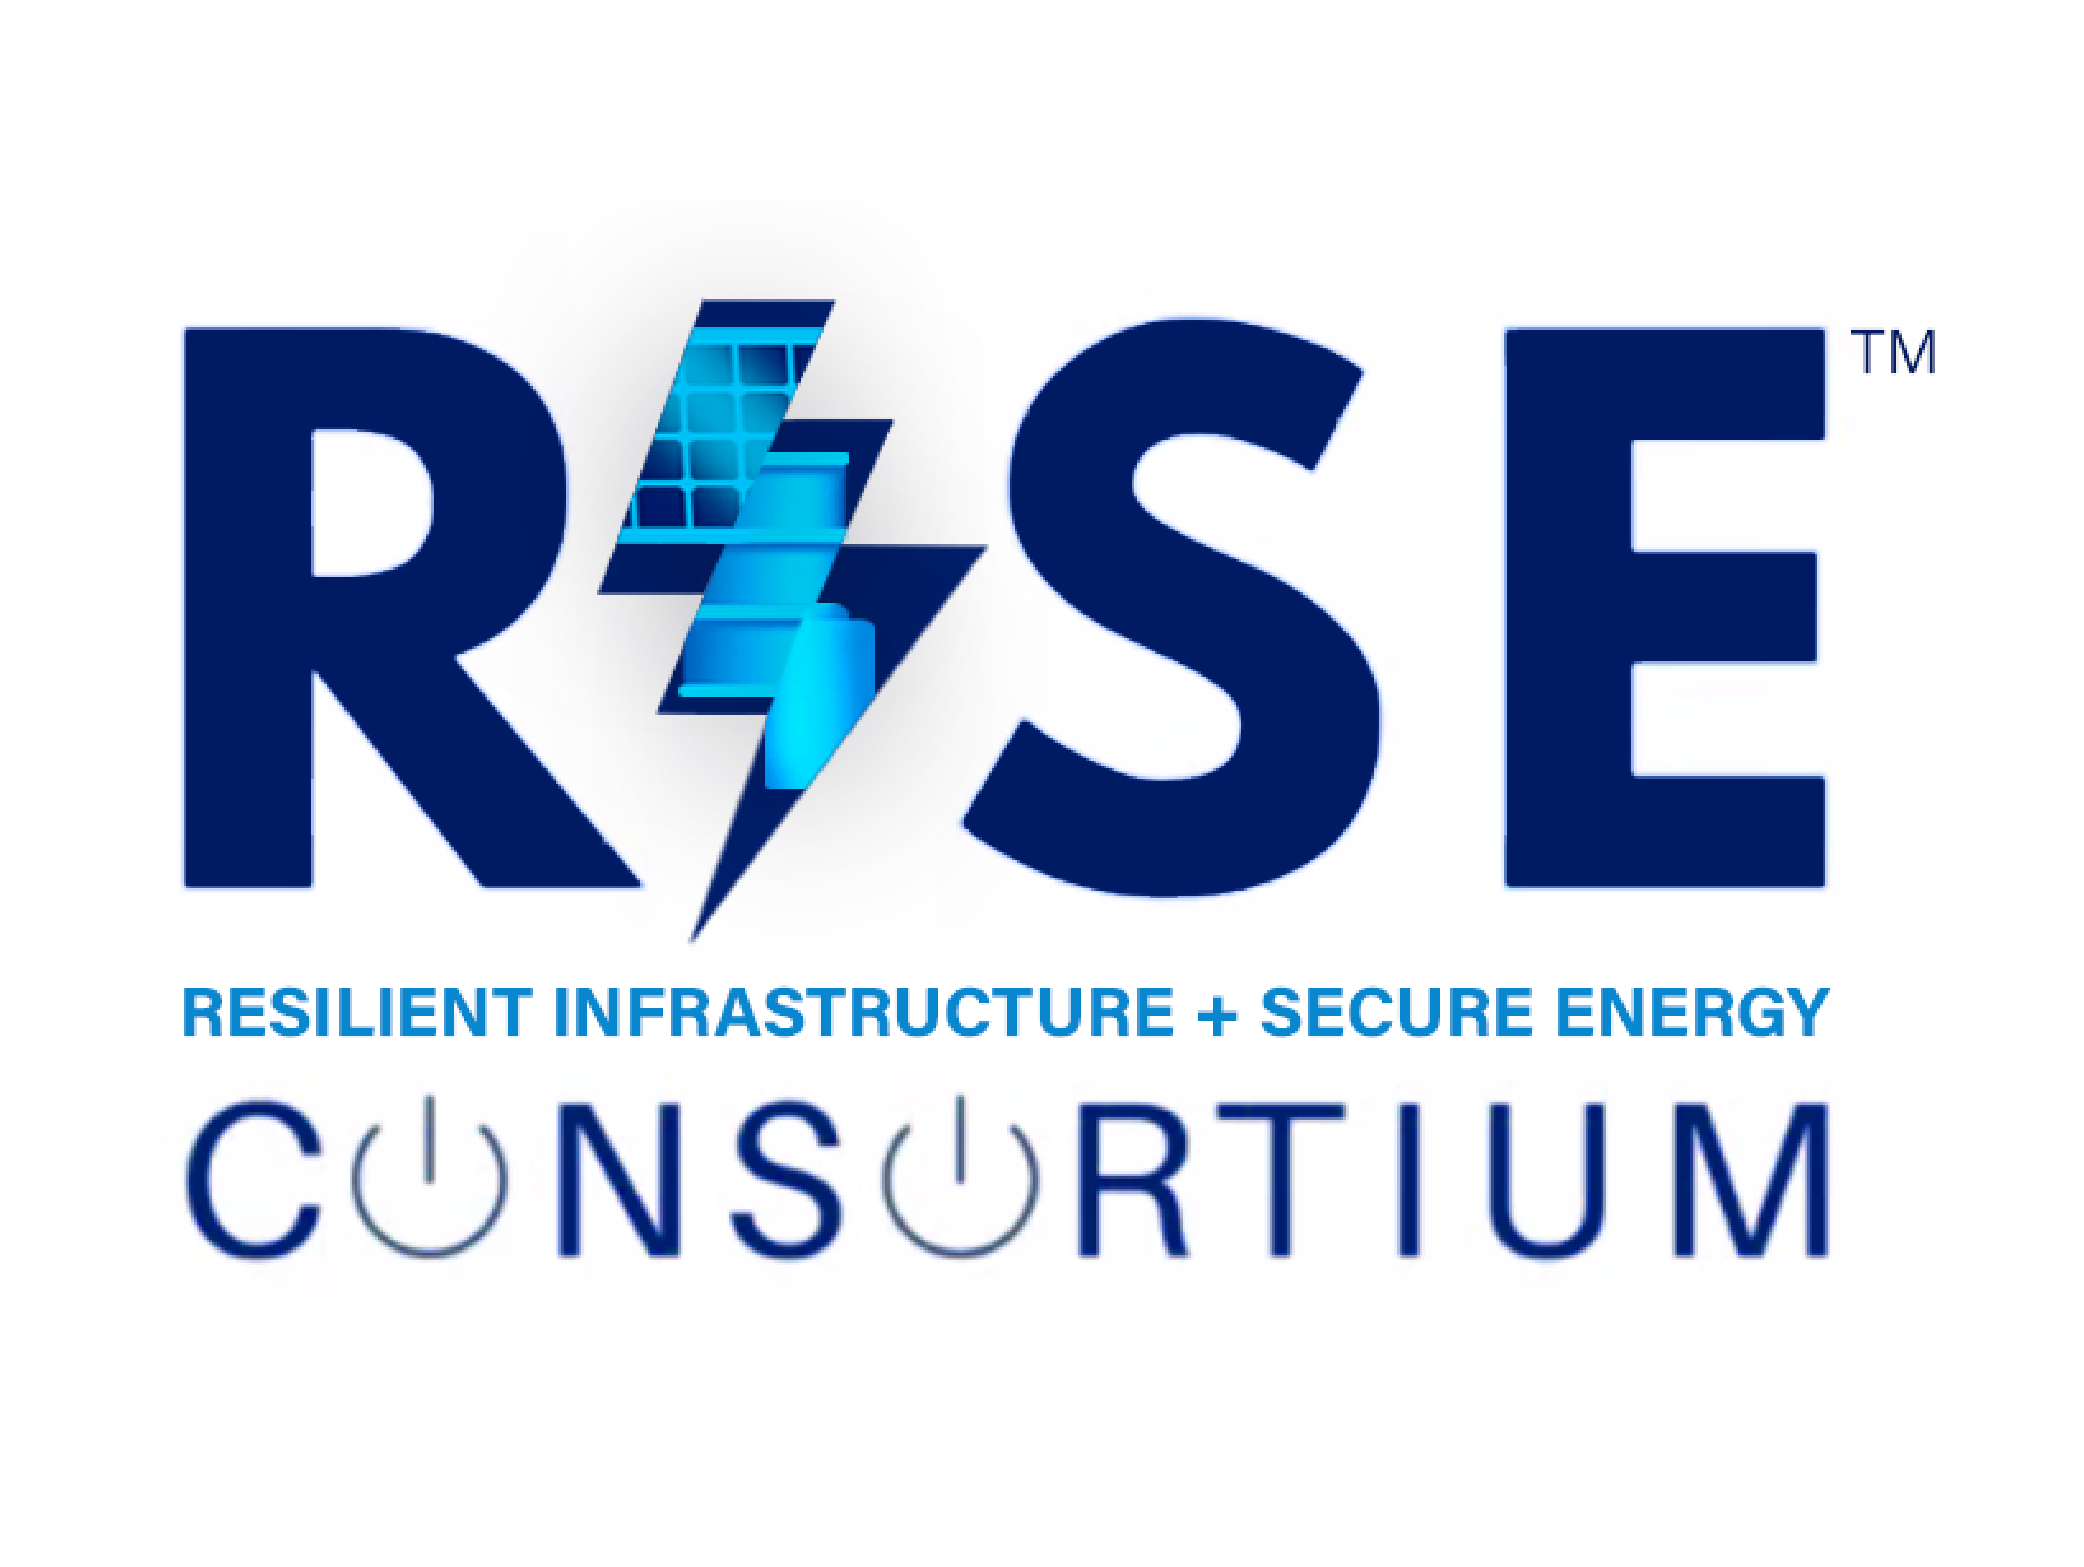 Resilient Infrastructure + Secure Energy (RISE) Consortium™ Logo